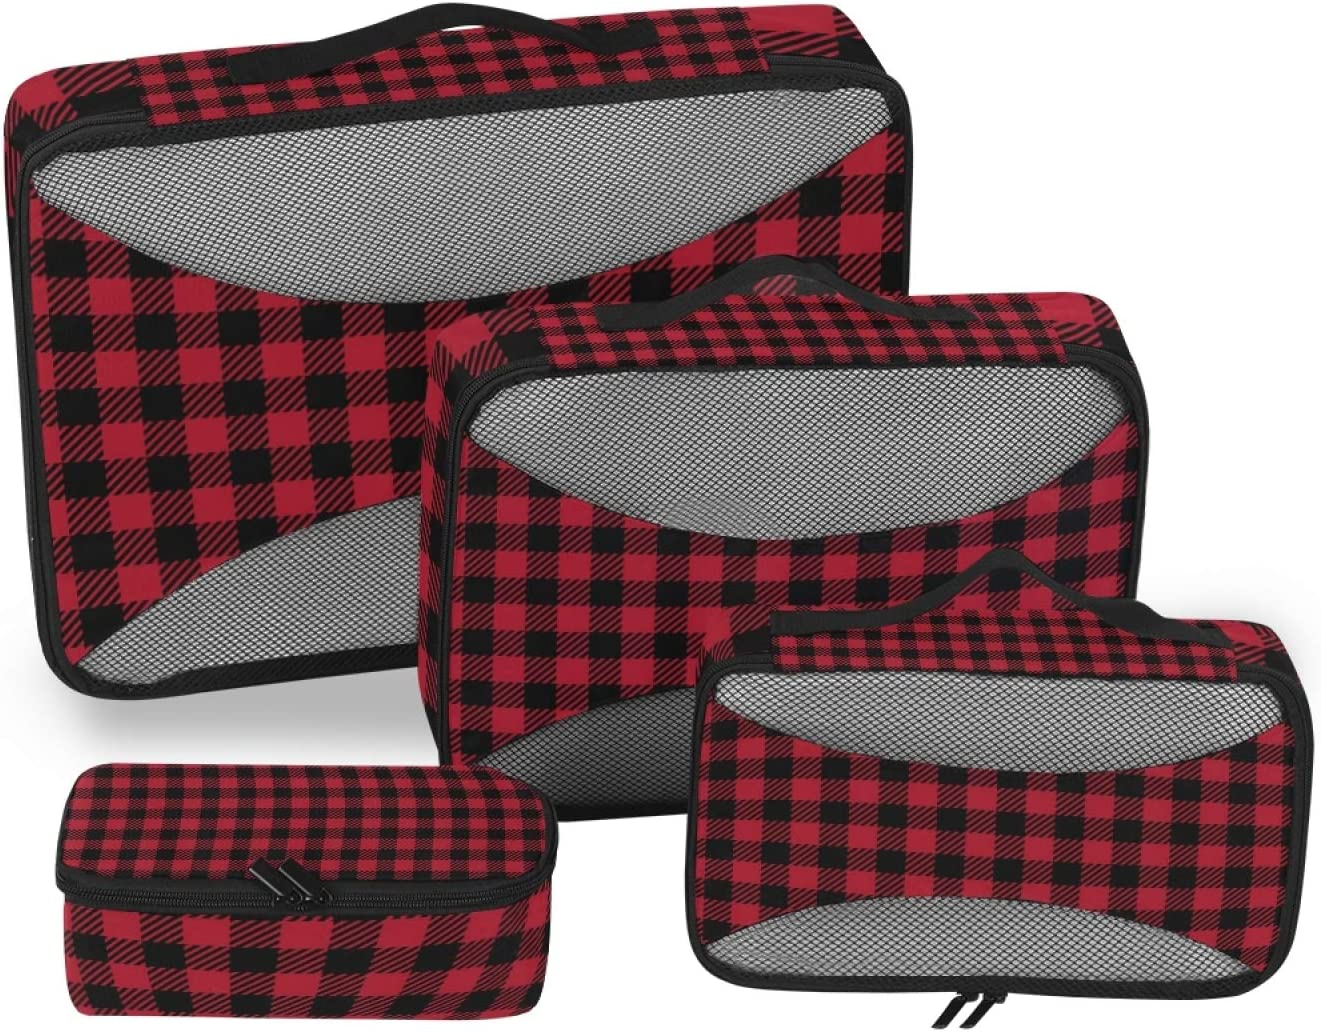 4 Set Packing Cubes with Toiletry Red Plaid - Luggage Bag Travel discount Max 65% OFF